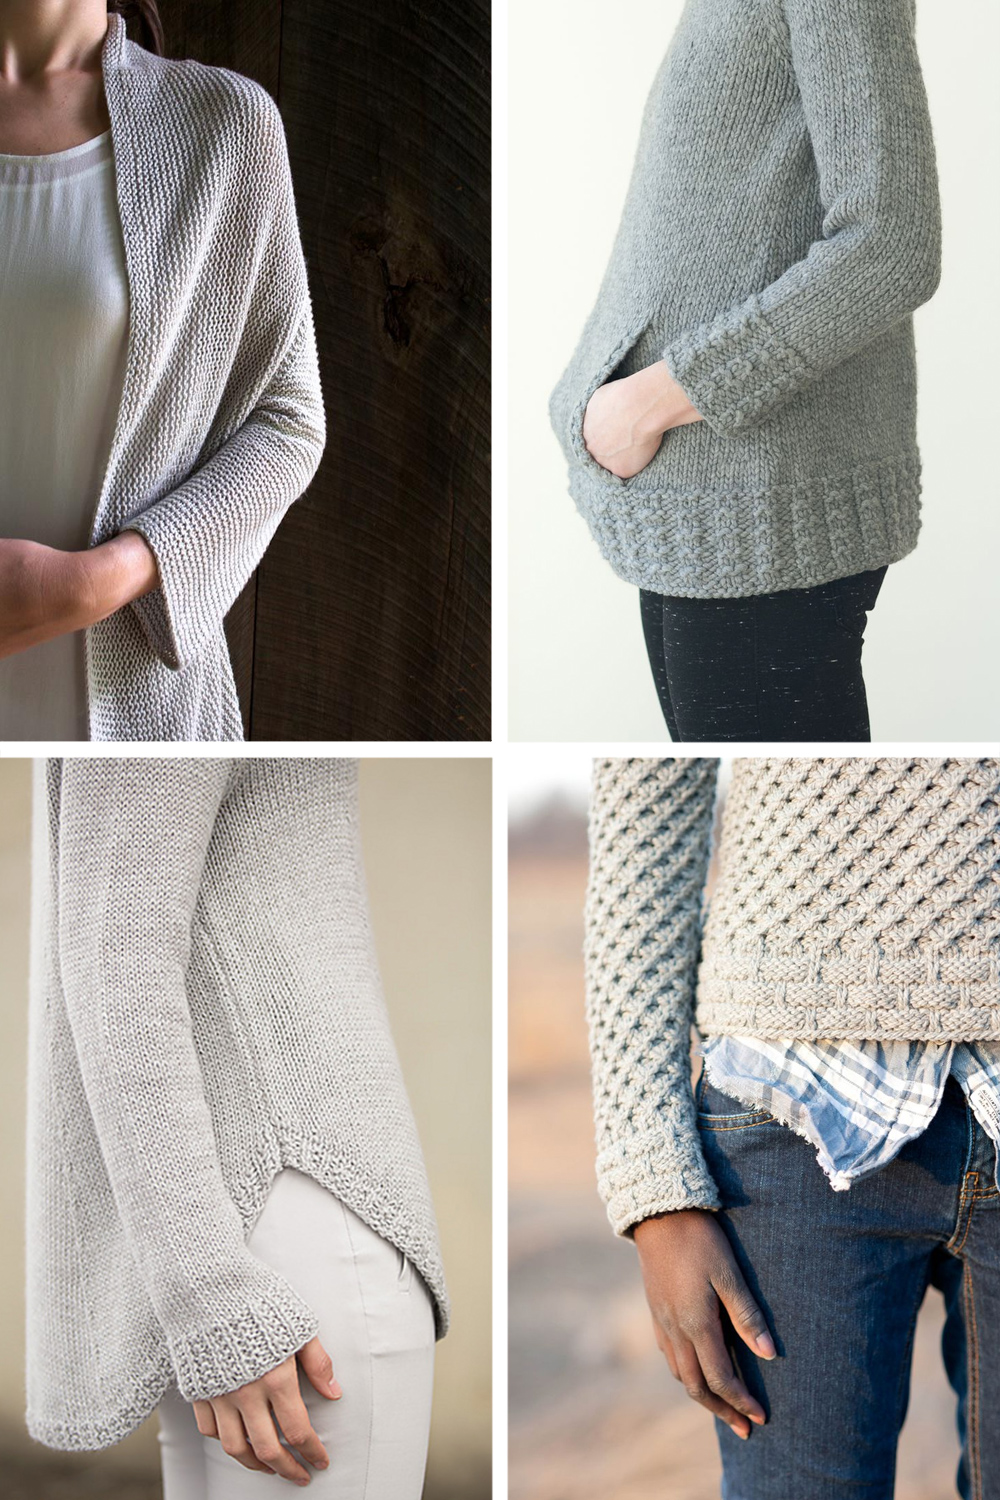 Clockwise from top left:  Folded Squares Cardigan  //  Montagne Sweater  //  Tundra Pullover  //  Shibui No. 31